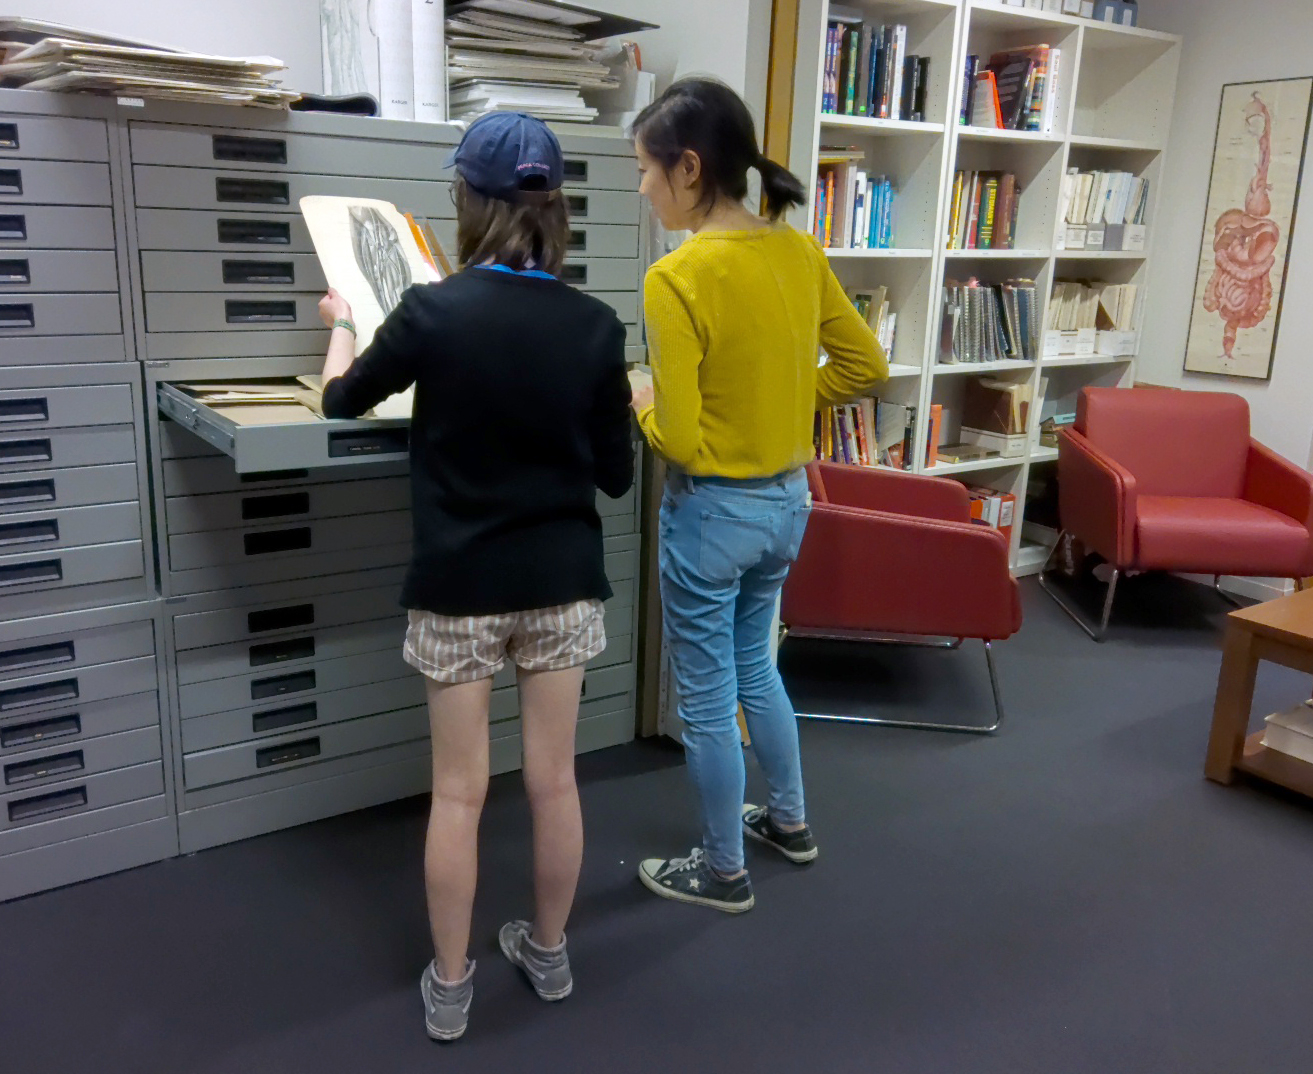 BMC students Colleen Tang Poy and Jenny Chin look through archival material in the Elizabeth Blackstock Library.